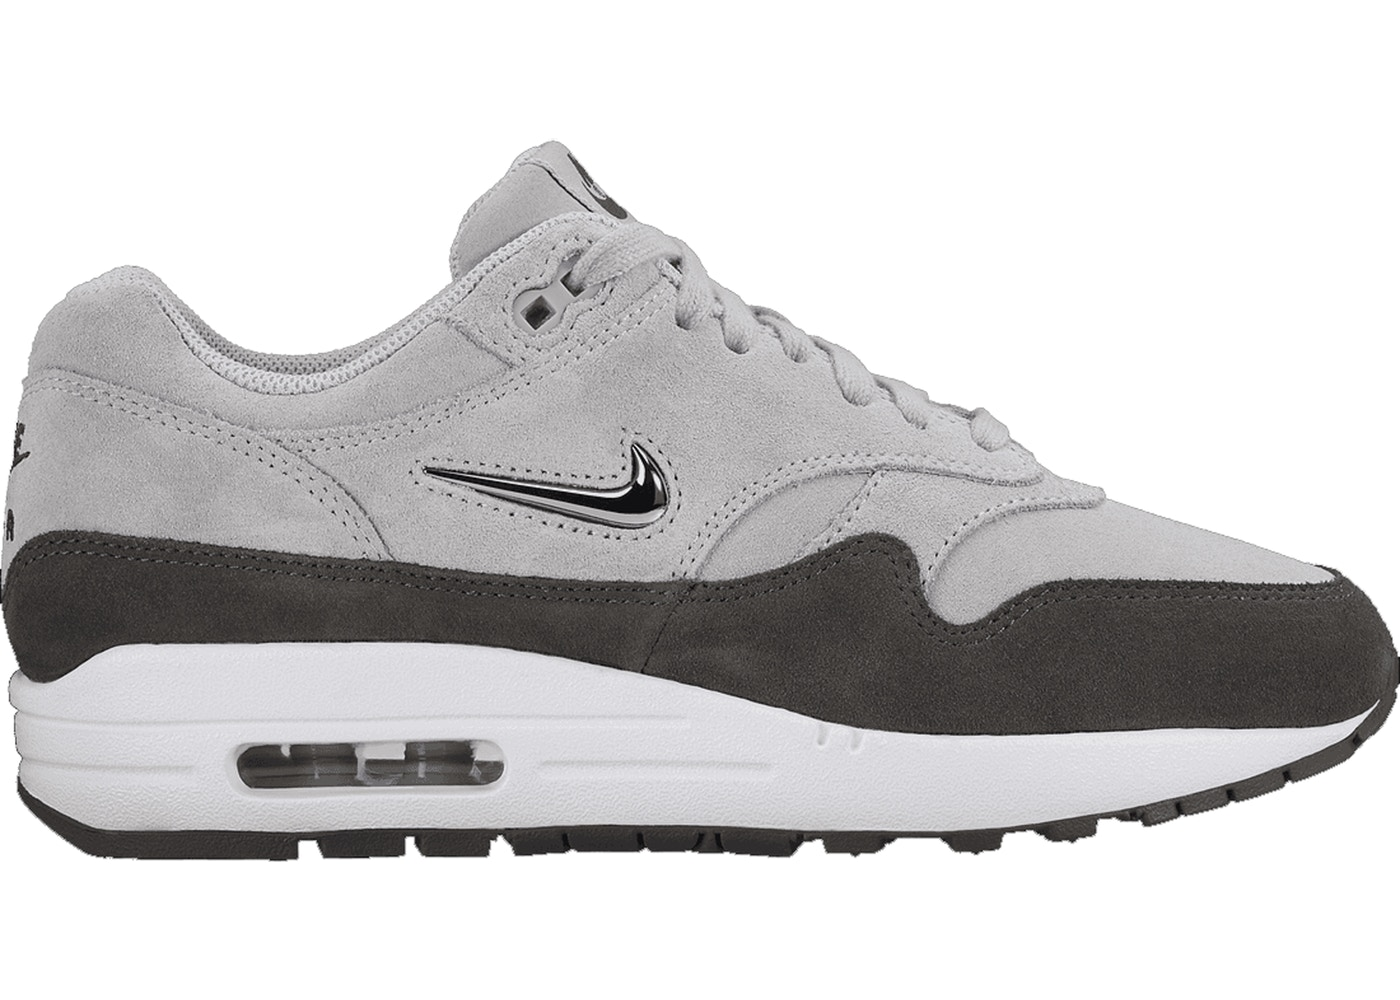 reputable site 6e9ac 8c814 Sell. or Ask. Size  8W. View All Bids. Air Max 1 Jewel Wolf Grey ...